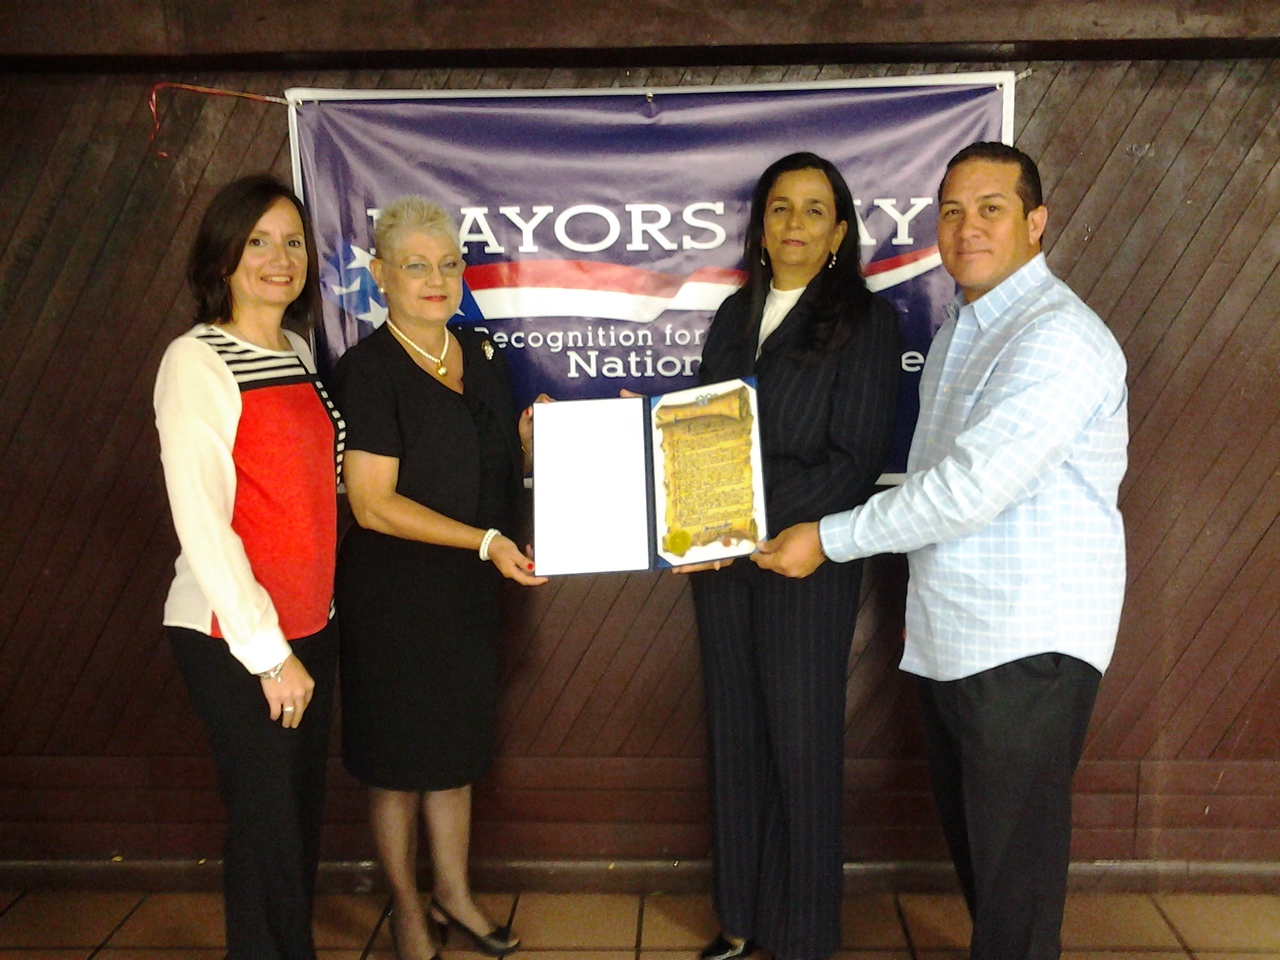 National service members participating in Mayors Day of Recognition for National Service in Bayamon, PR on April 1, 2014. Corporation for National and Community Service Photo.